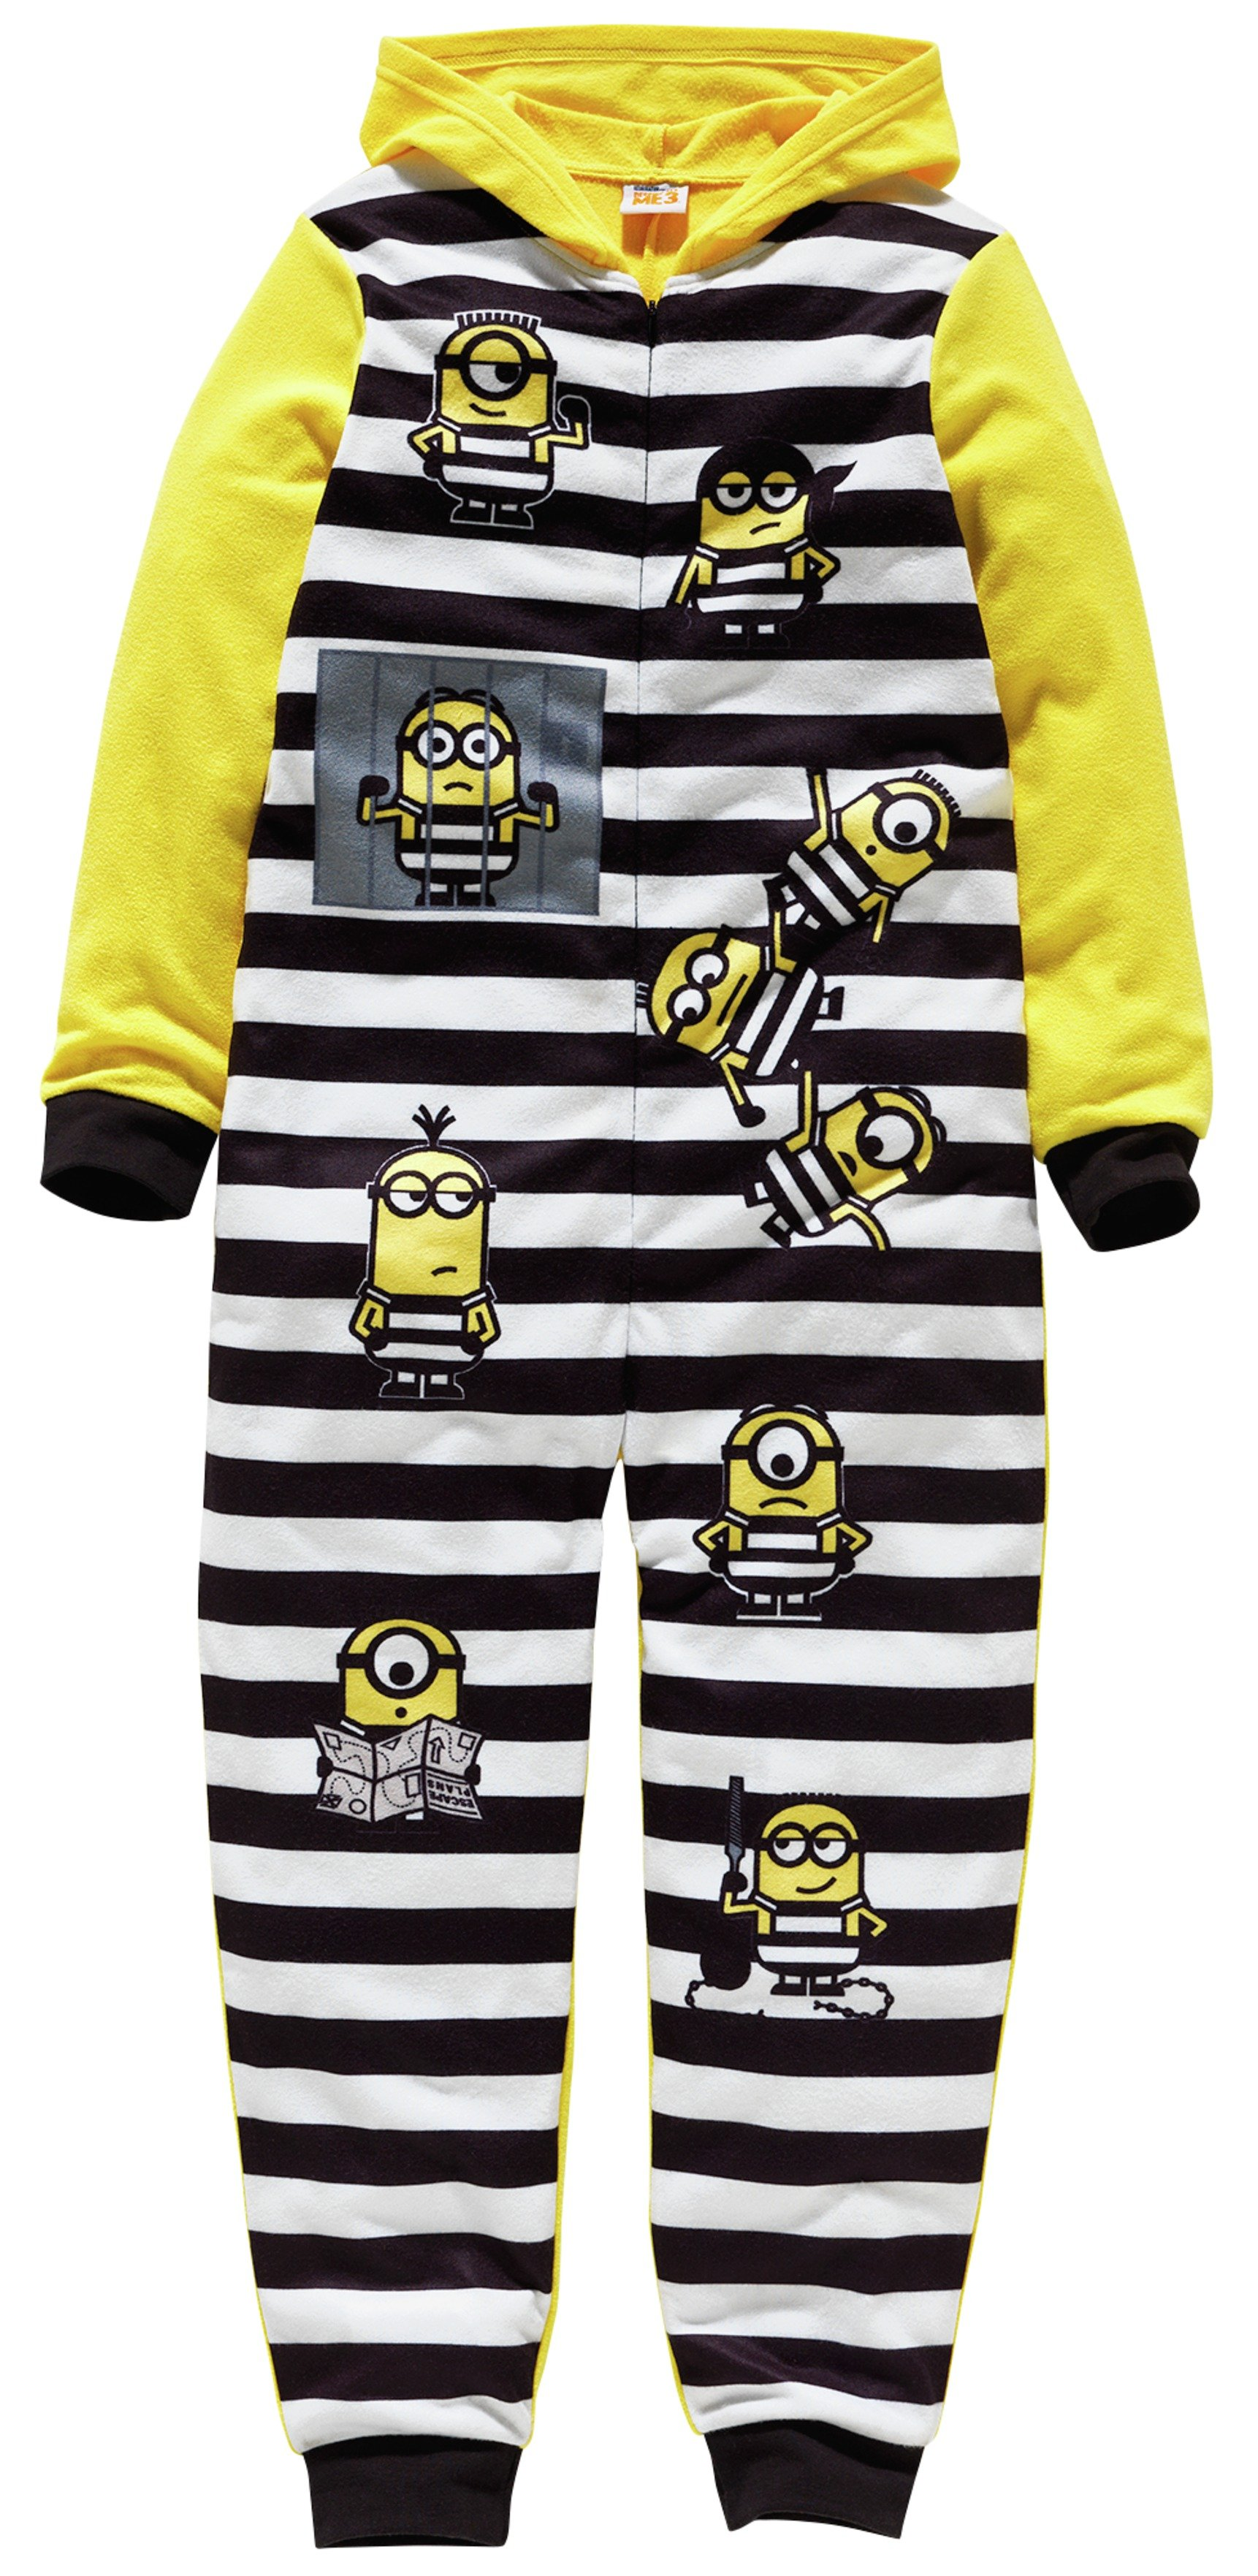 'Minions Yellow Onesie - 9-10 Years